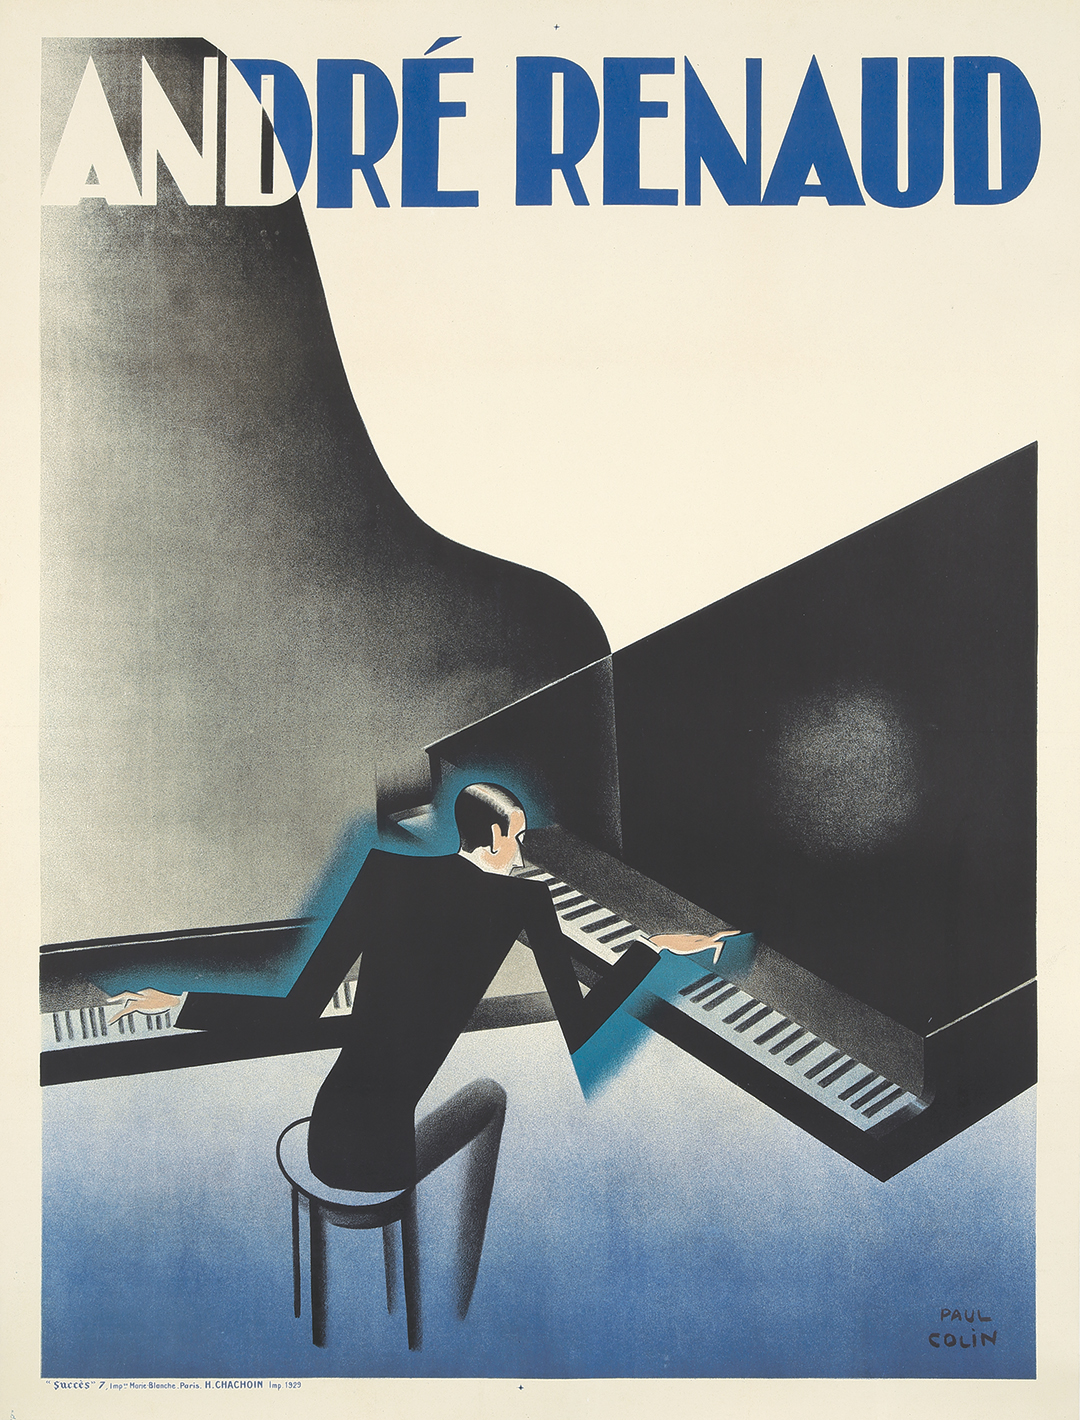 243. André Renaud. 1929.